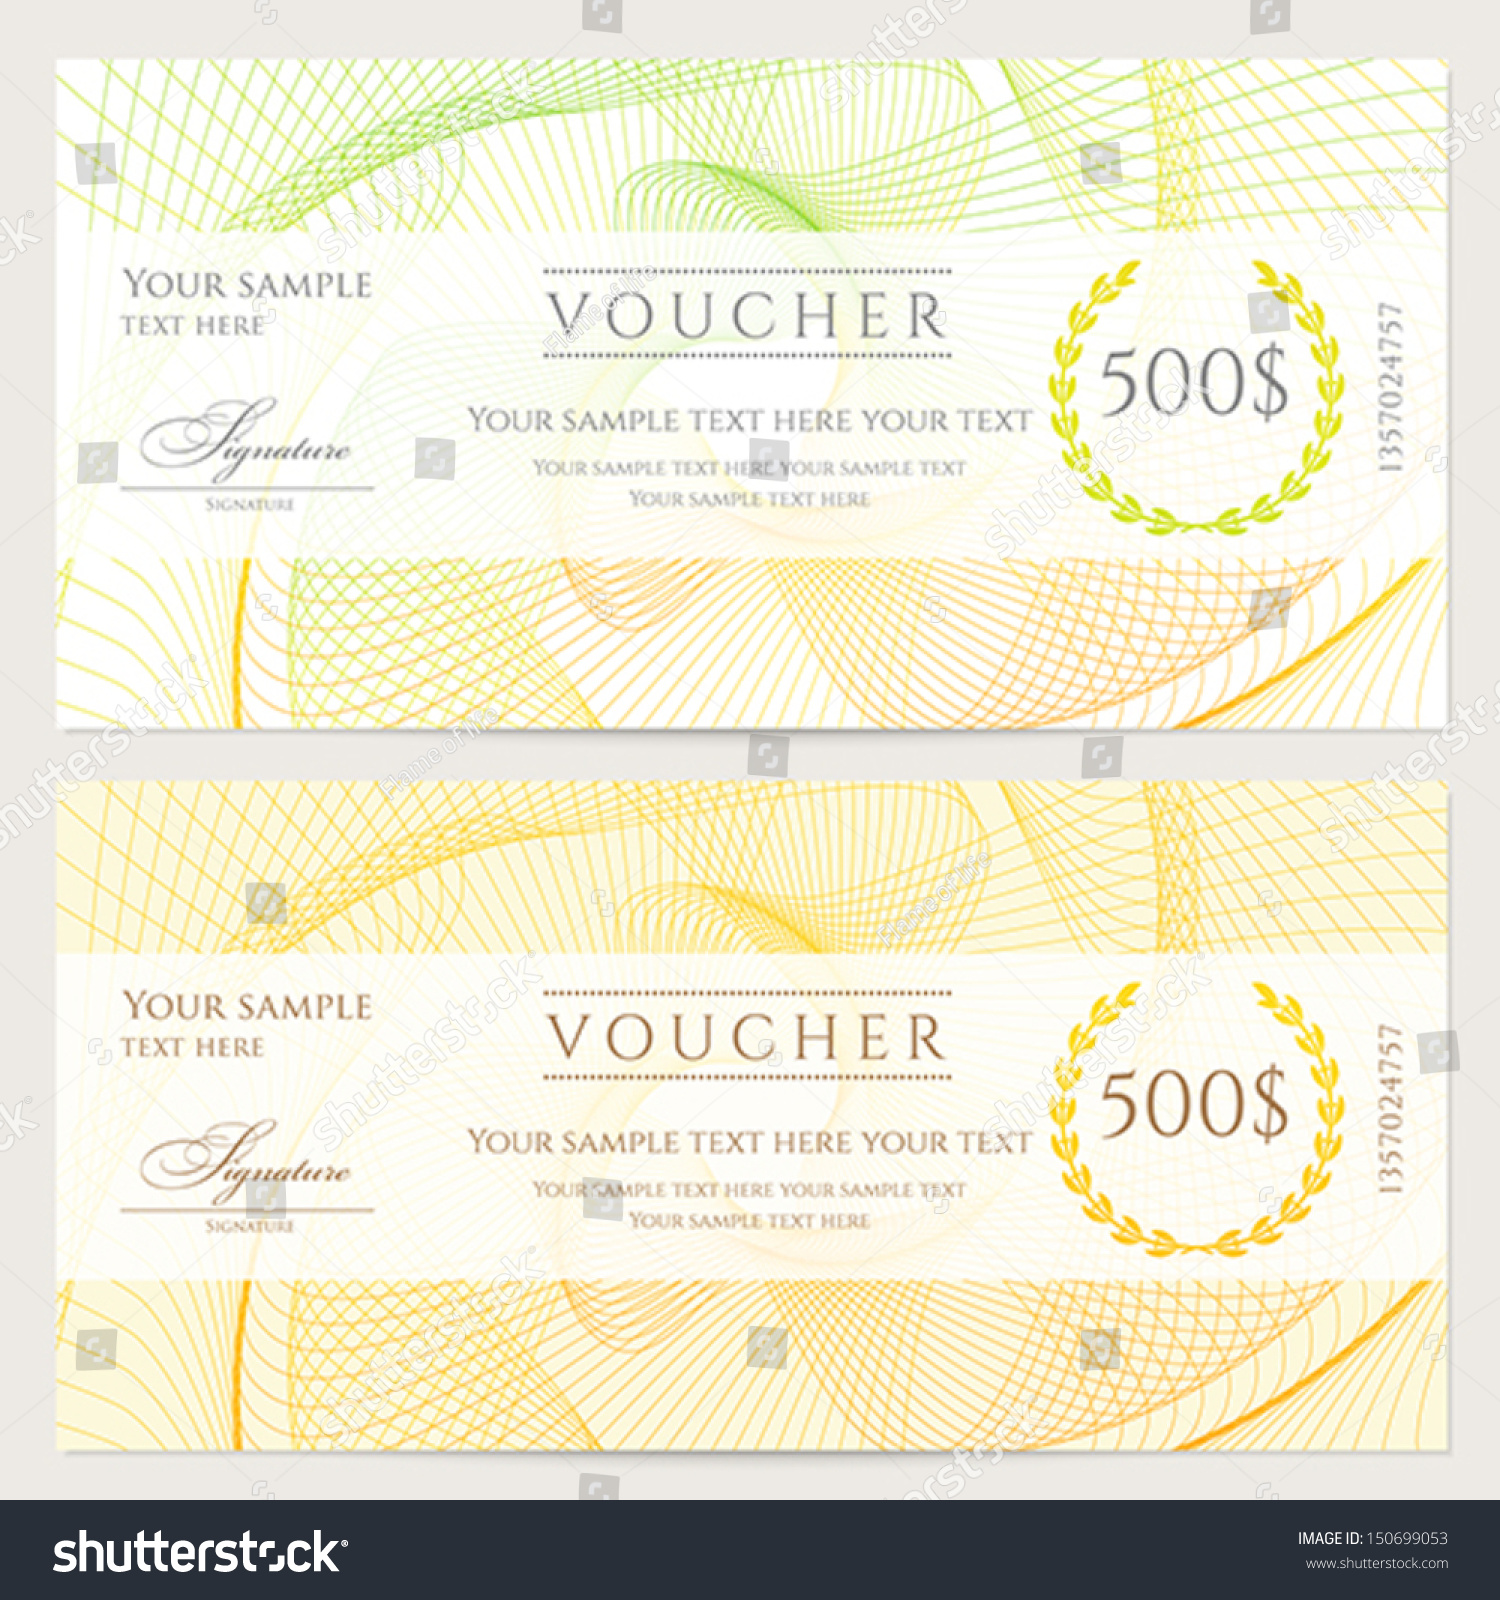 gift certificate voucher coupon template colorful stock vector gift certificate voucher coupon template colorful rainbow guilloche pattern watermark